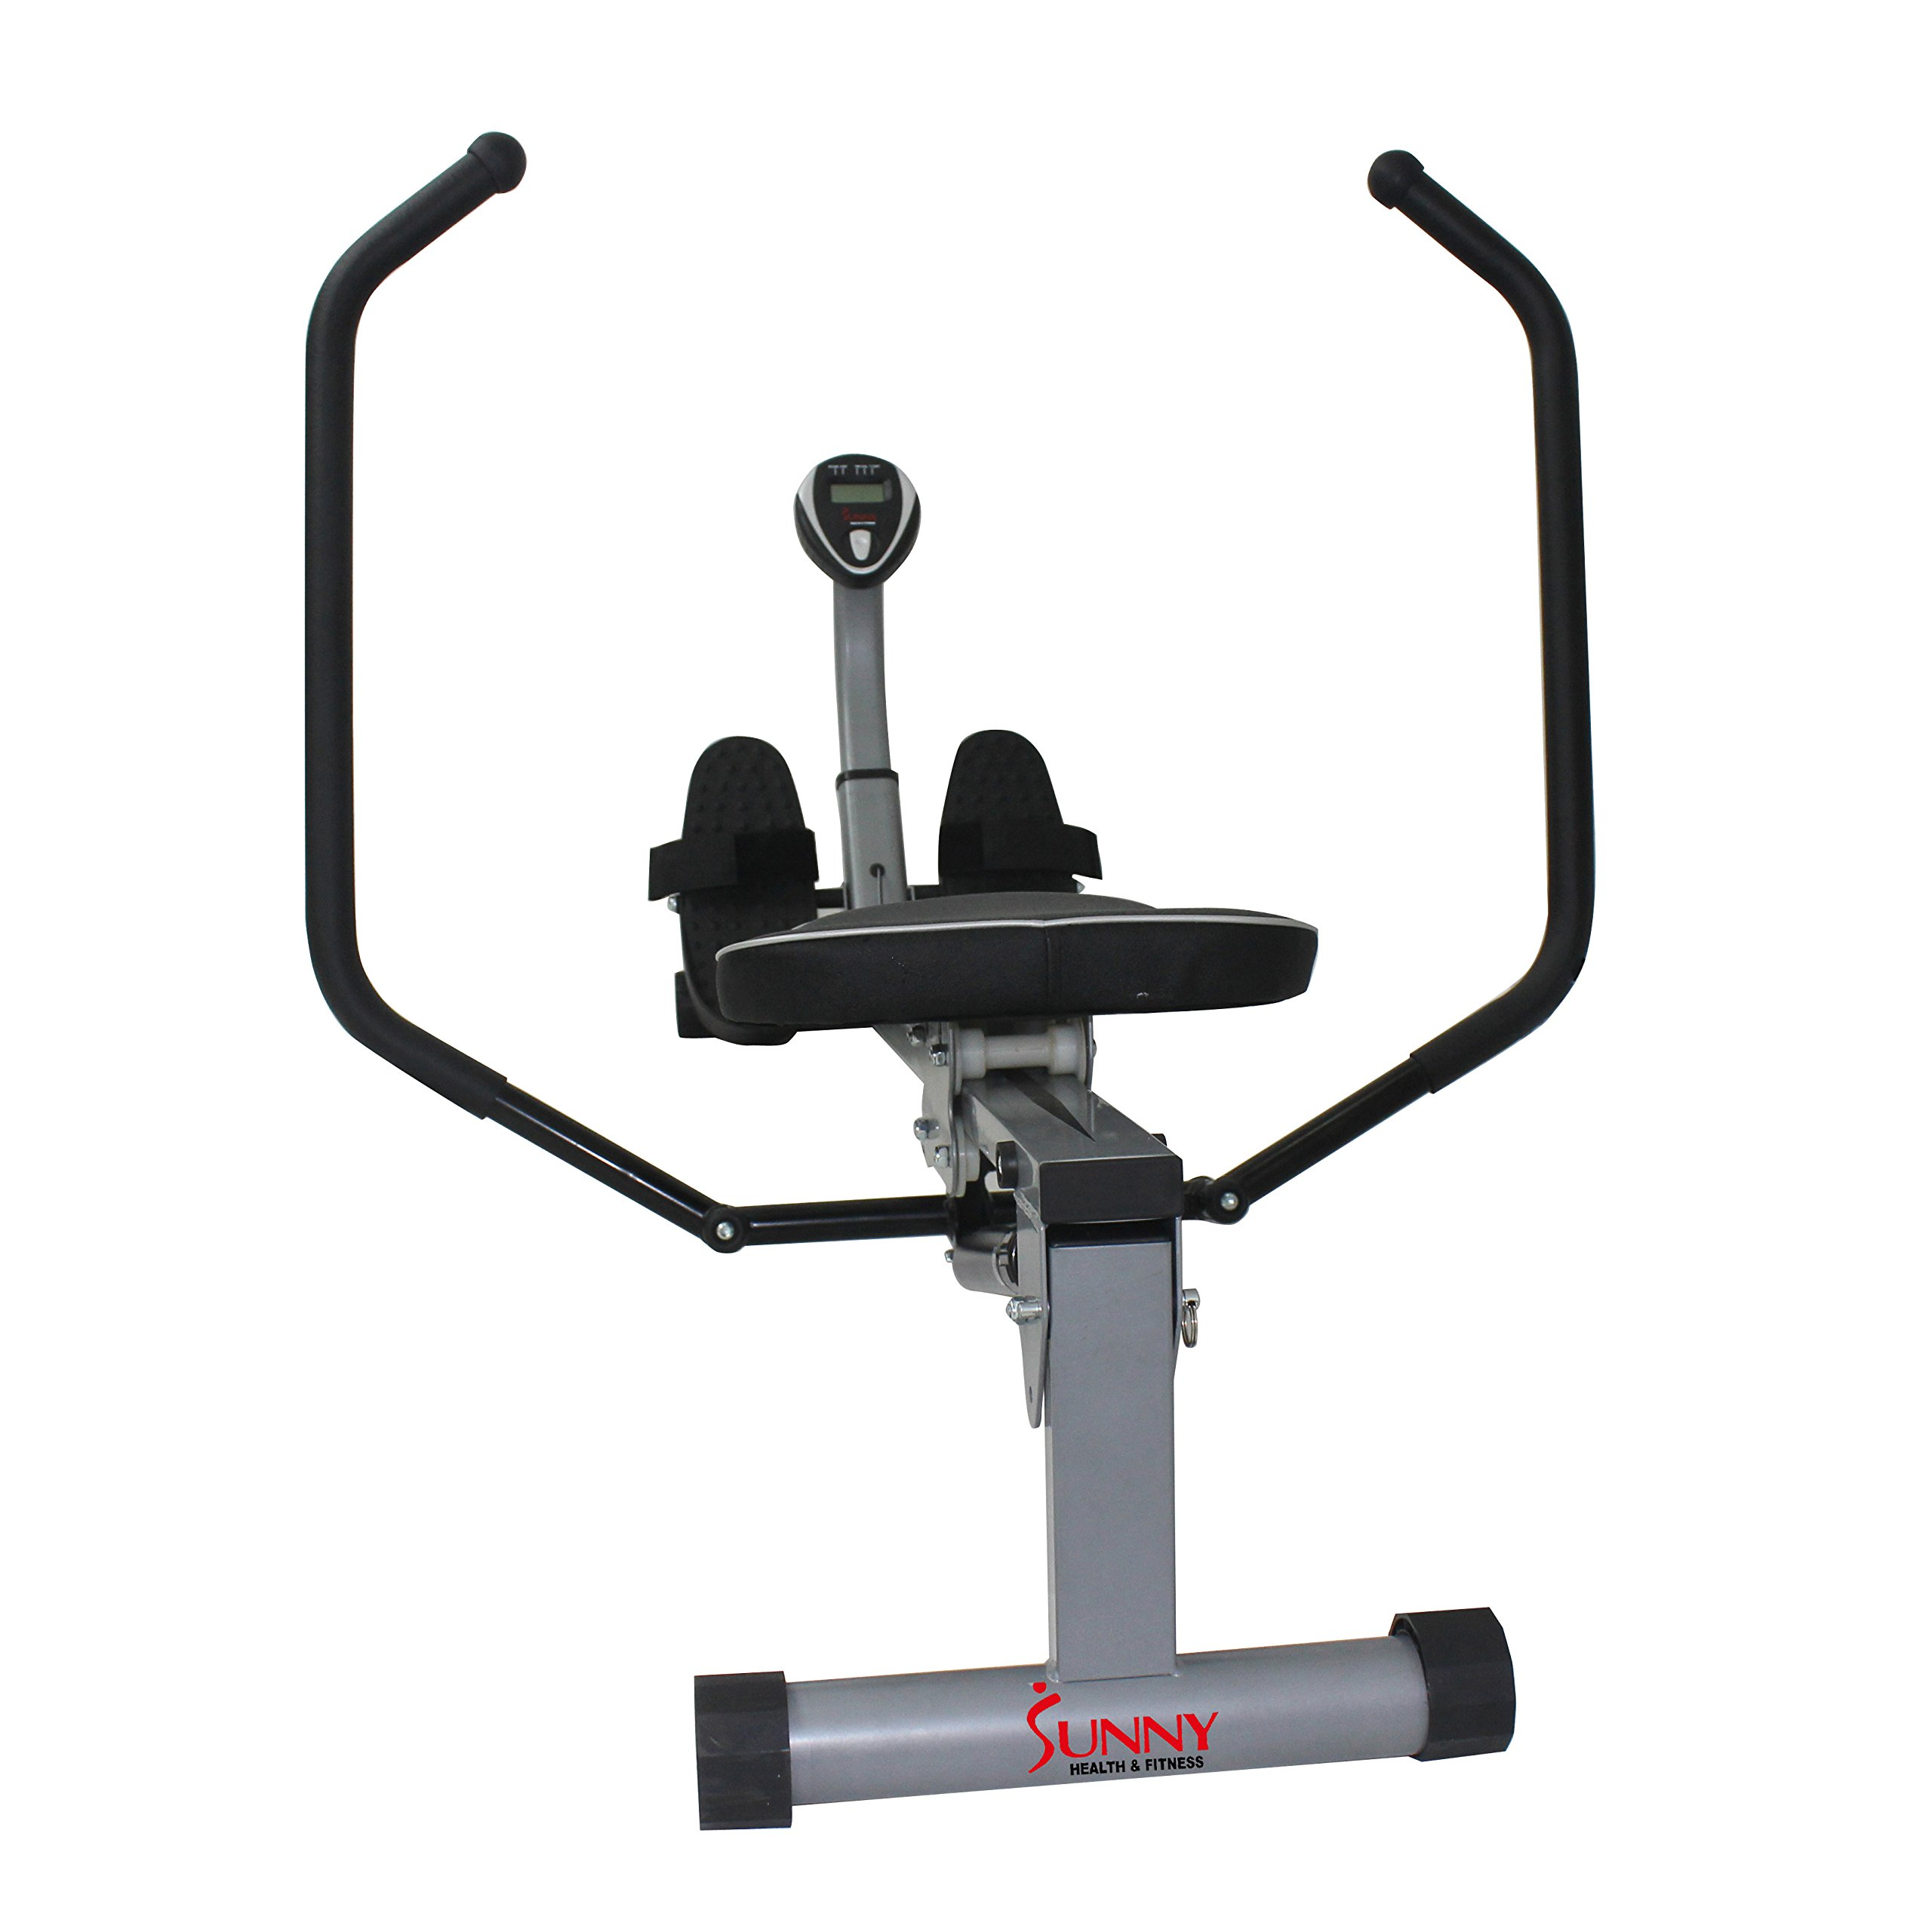 Sunny Health & Fitness SF-RW1410 Rowing Machine Rower with Full Motion Arms and LCD Monitor by Sunny Health & Fitness (Image #10)